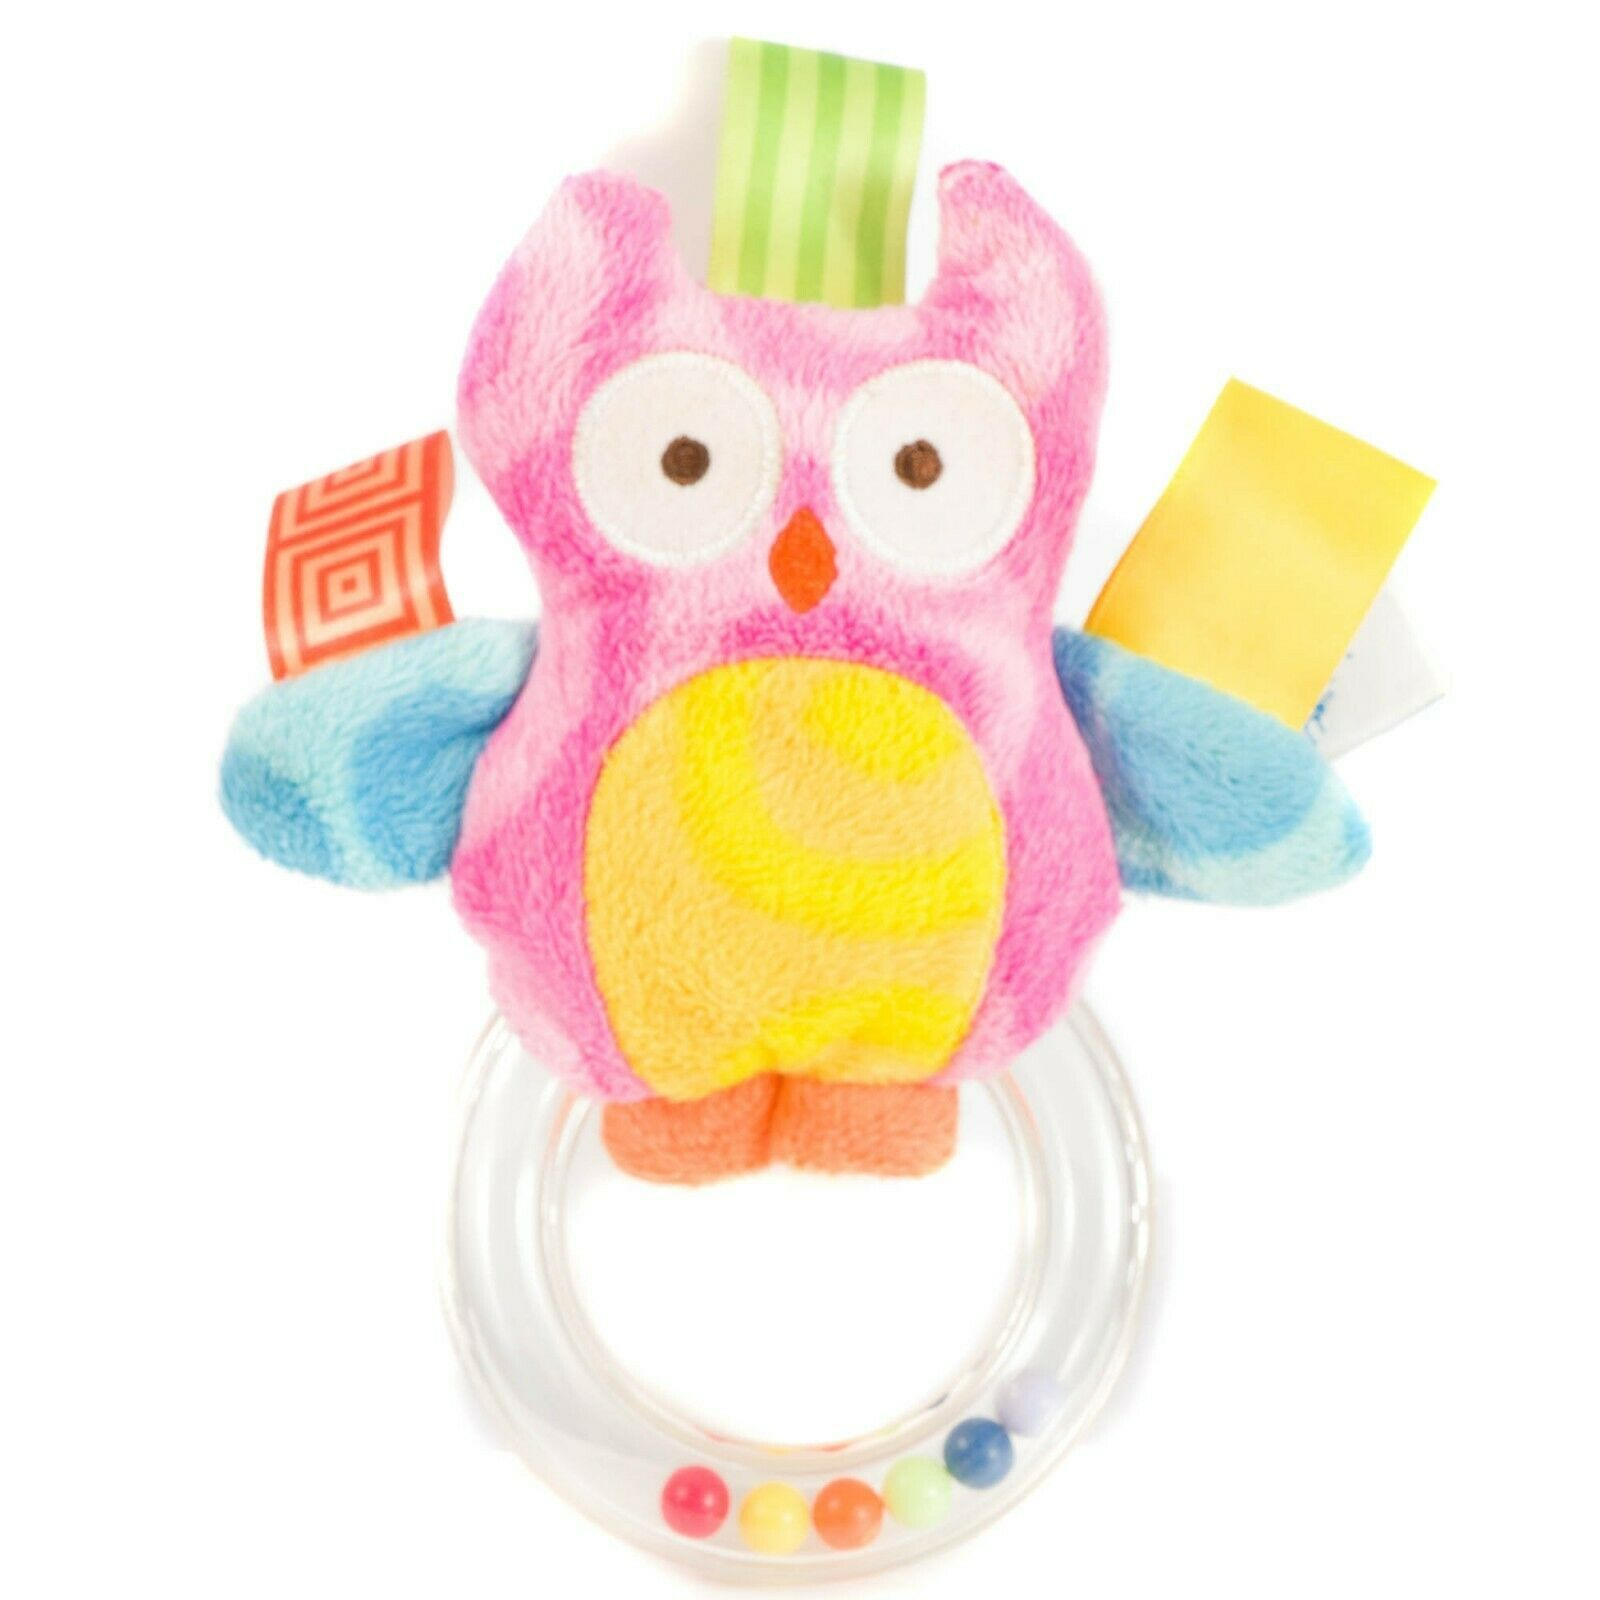 Primary image for Taggies Owl Rattle Mary Meyer Plush Pink Tags Beads Soft Yellow Blue Plush